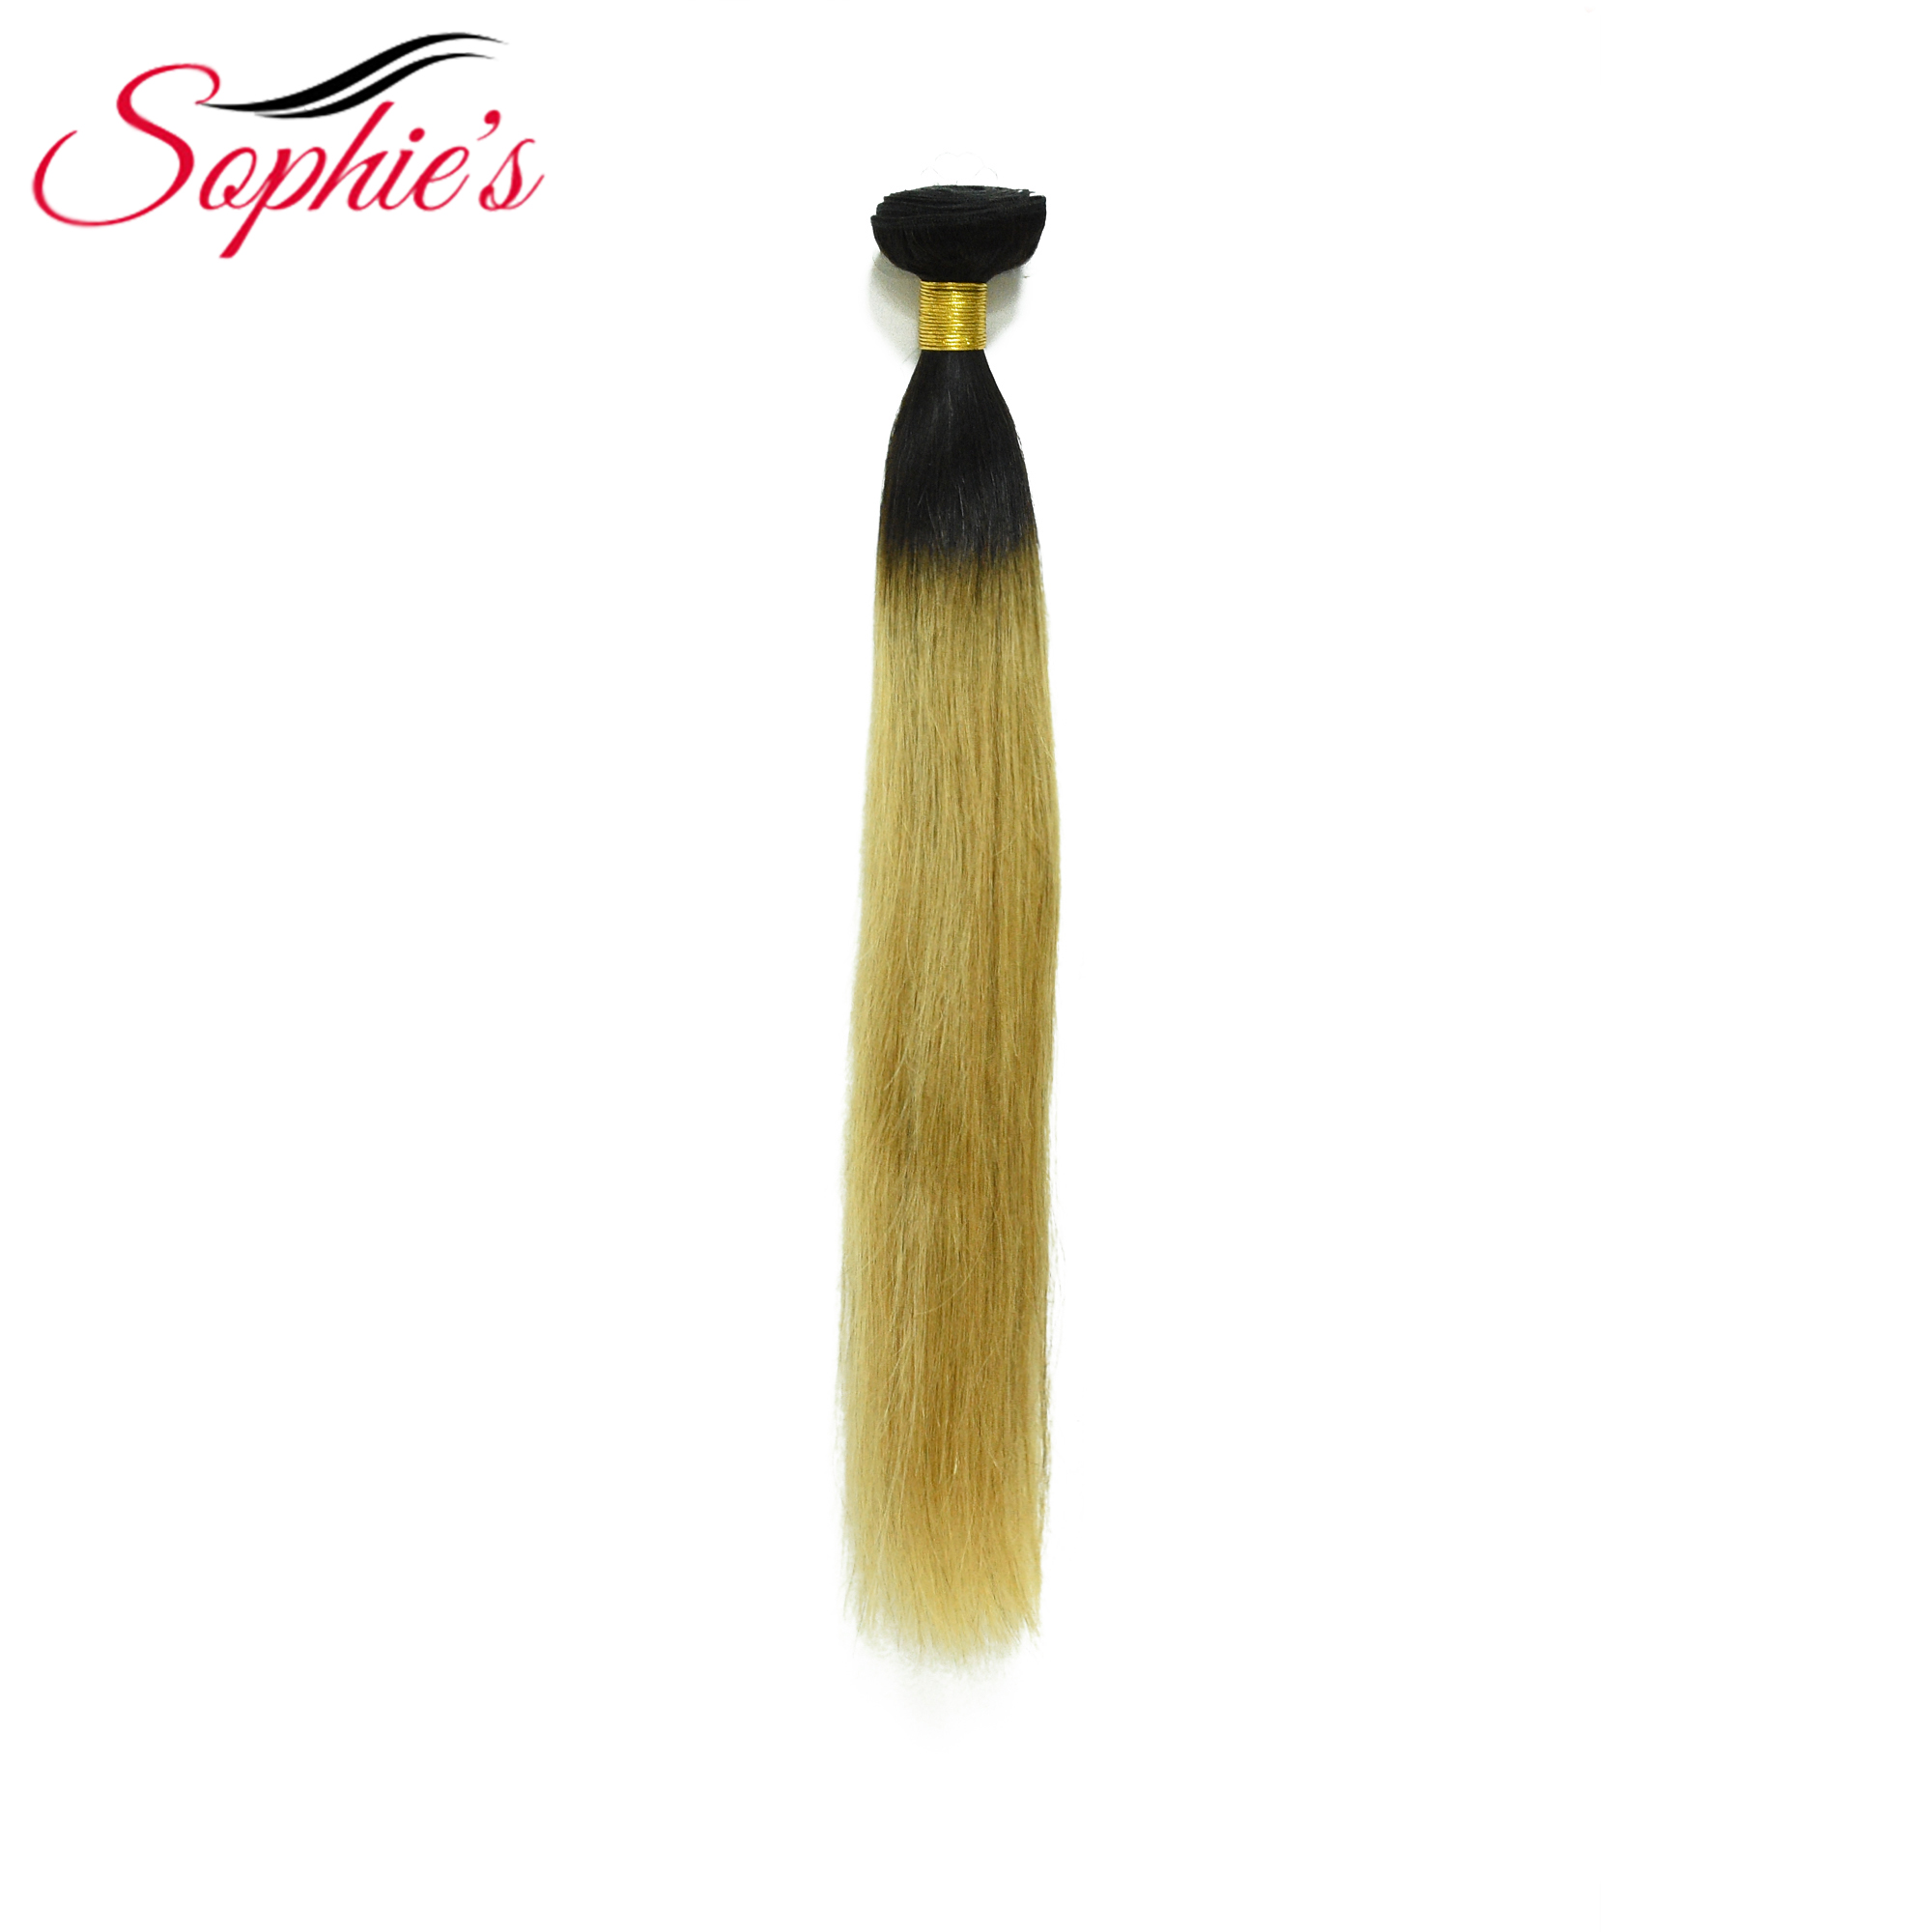 Sophie's Pre-colored Ombre T1B/27 Color Hair Brazilian Human  Hair 1 Bundles  Non-Remy Straight Hair Sew In Hair Extensions